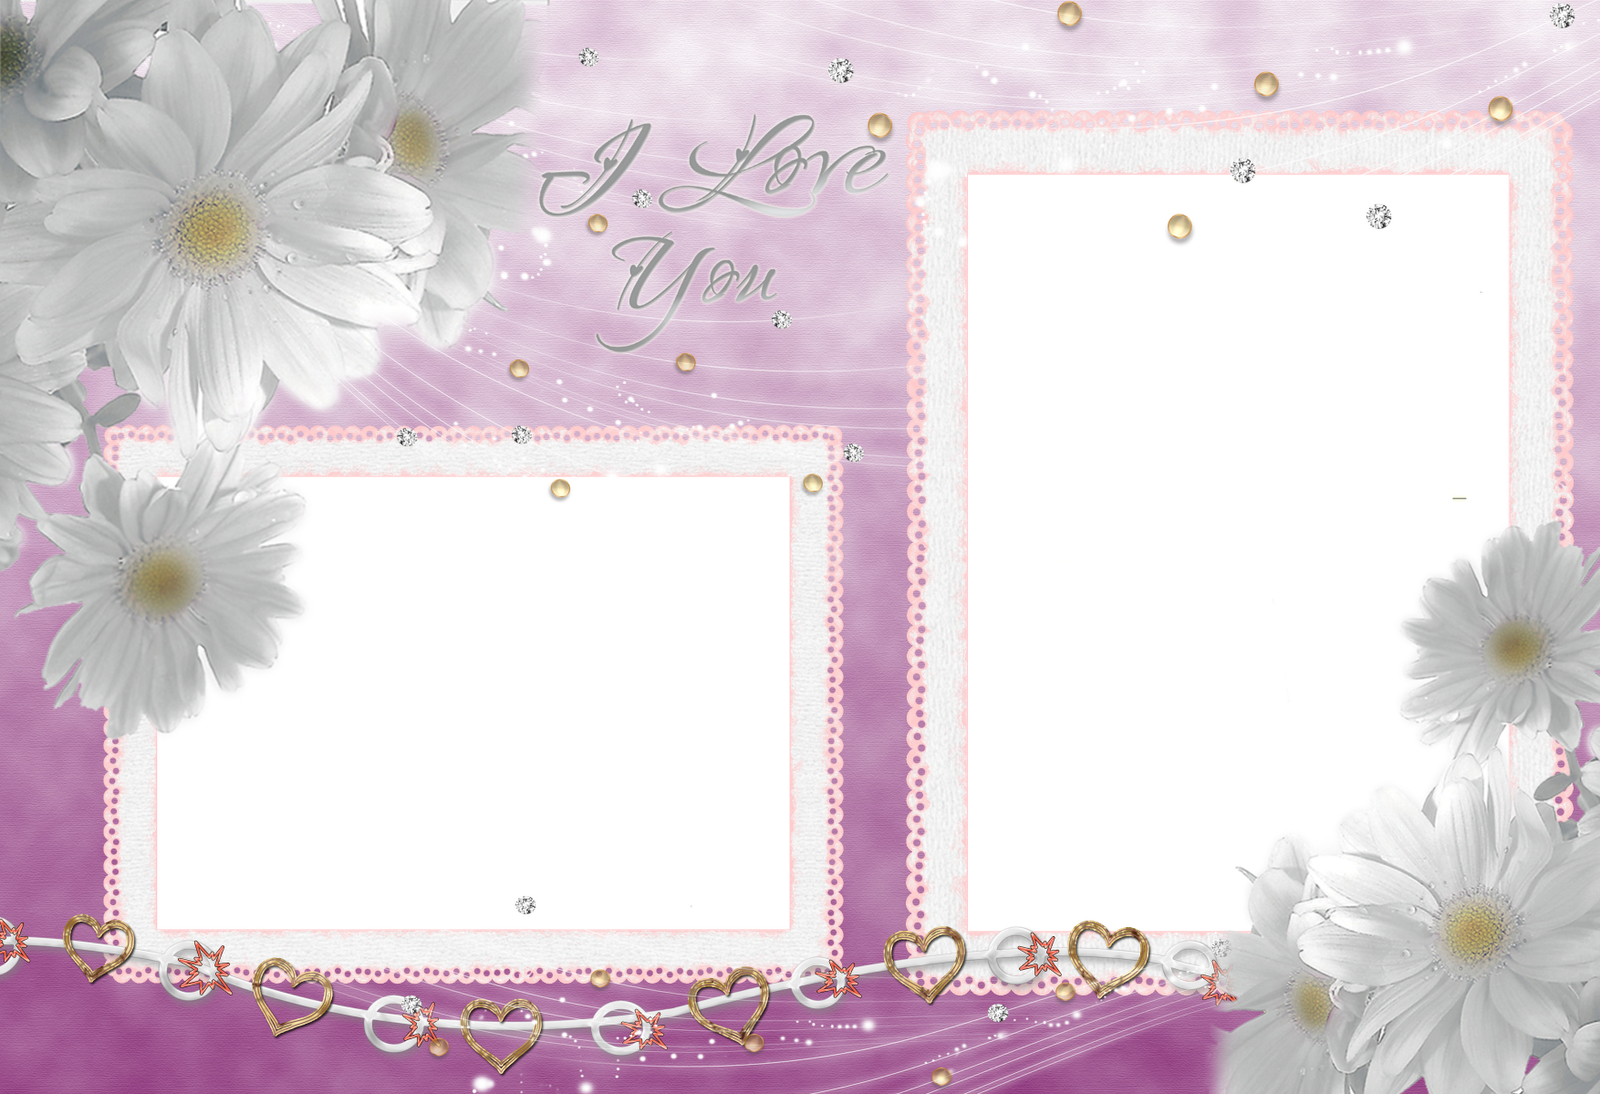 Free Photo Frame Png Images